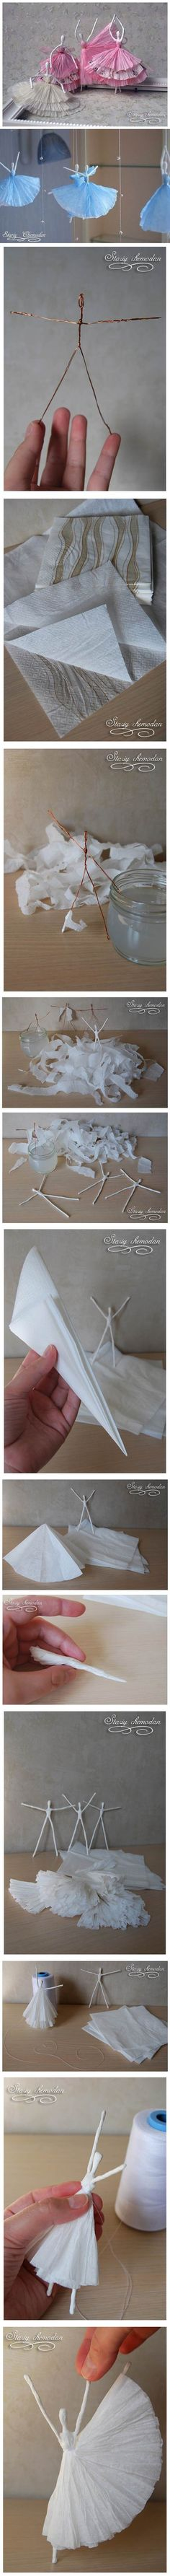 DIY Napkin Paper Ballerina | iCreativeIdeas.com Like Us on Facebook == https://www.facebook.com/icreativeideas